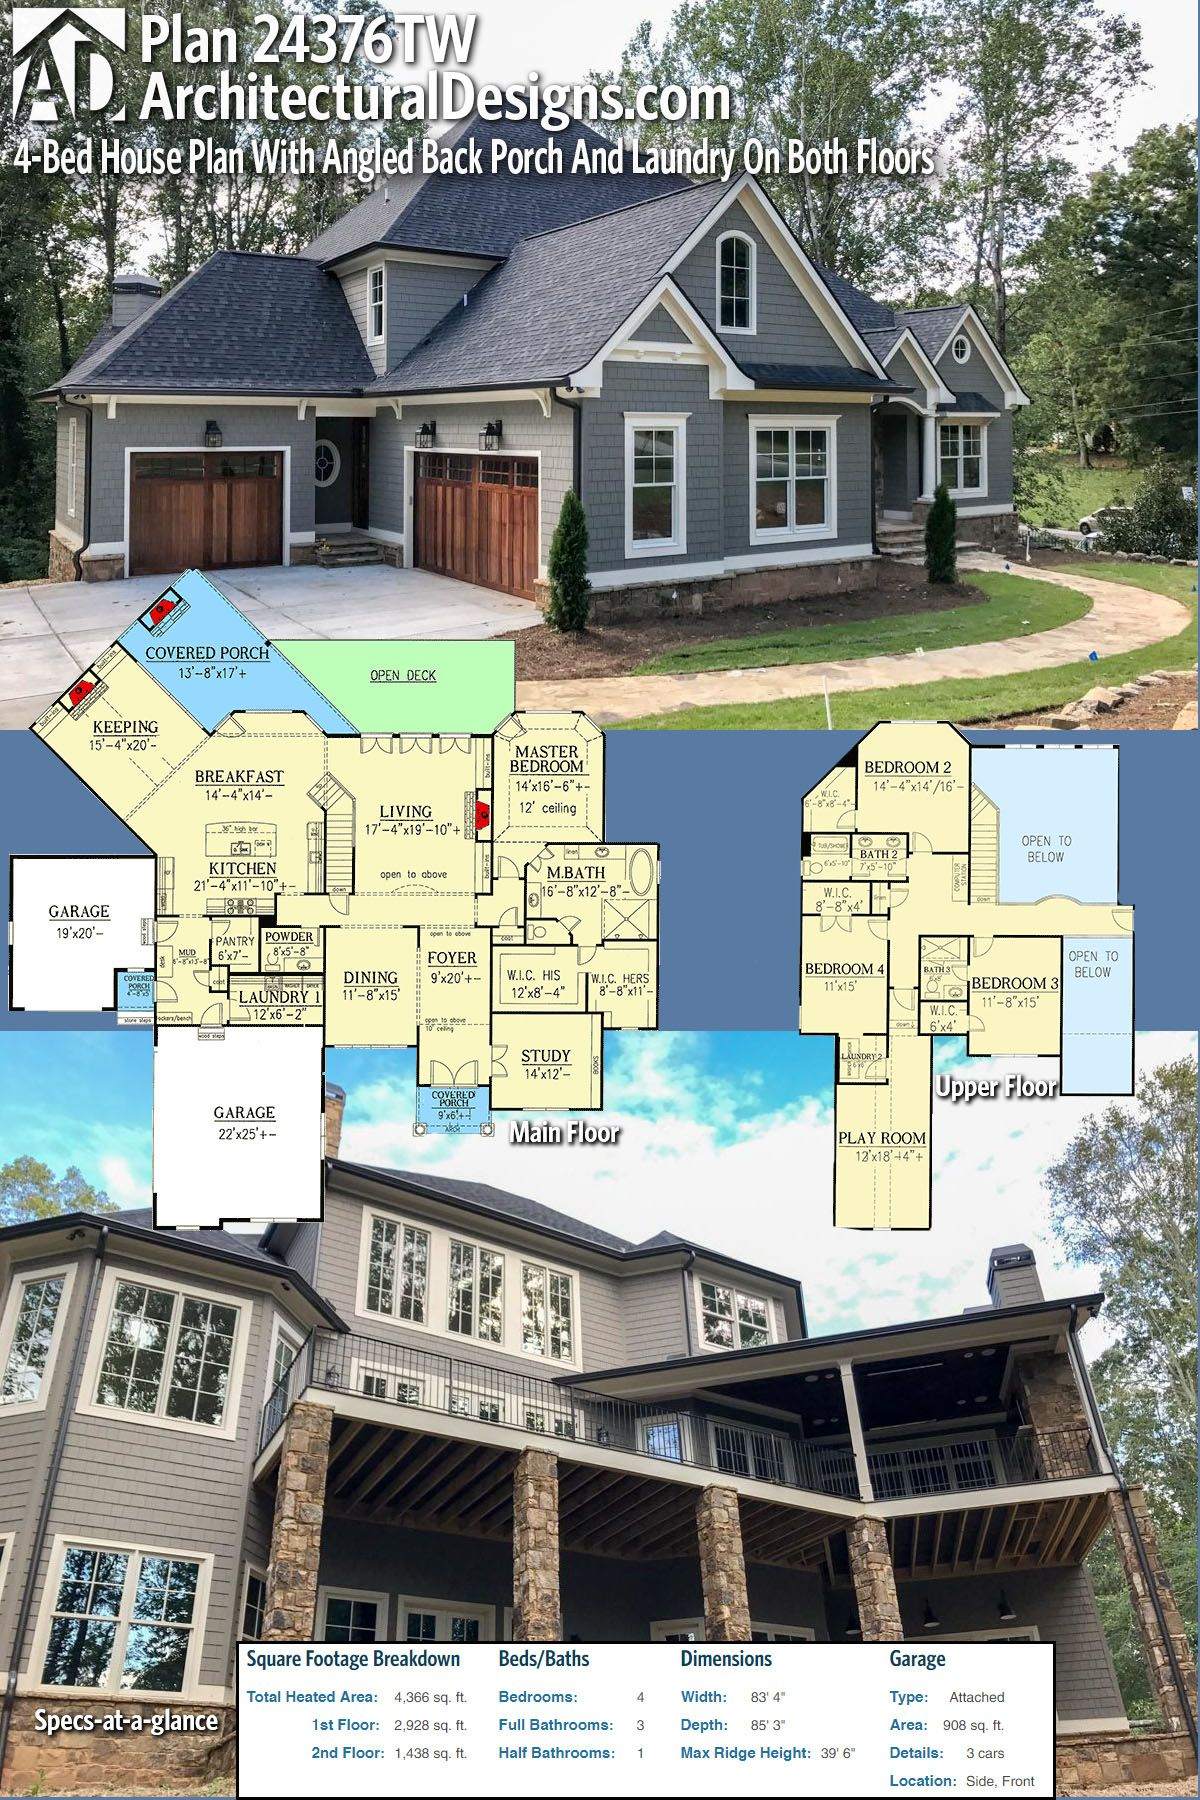 Architectural Designs House Plan 24376TW gives you